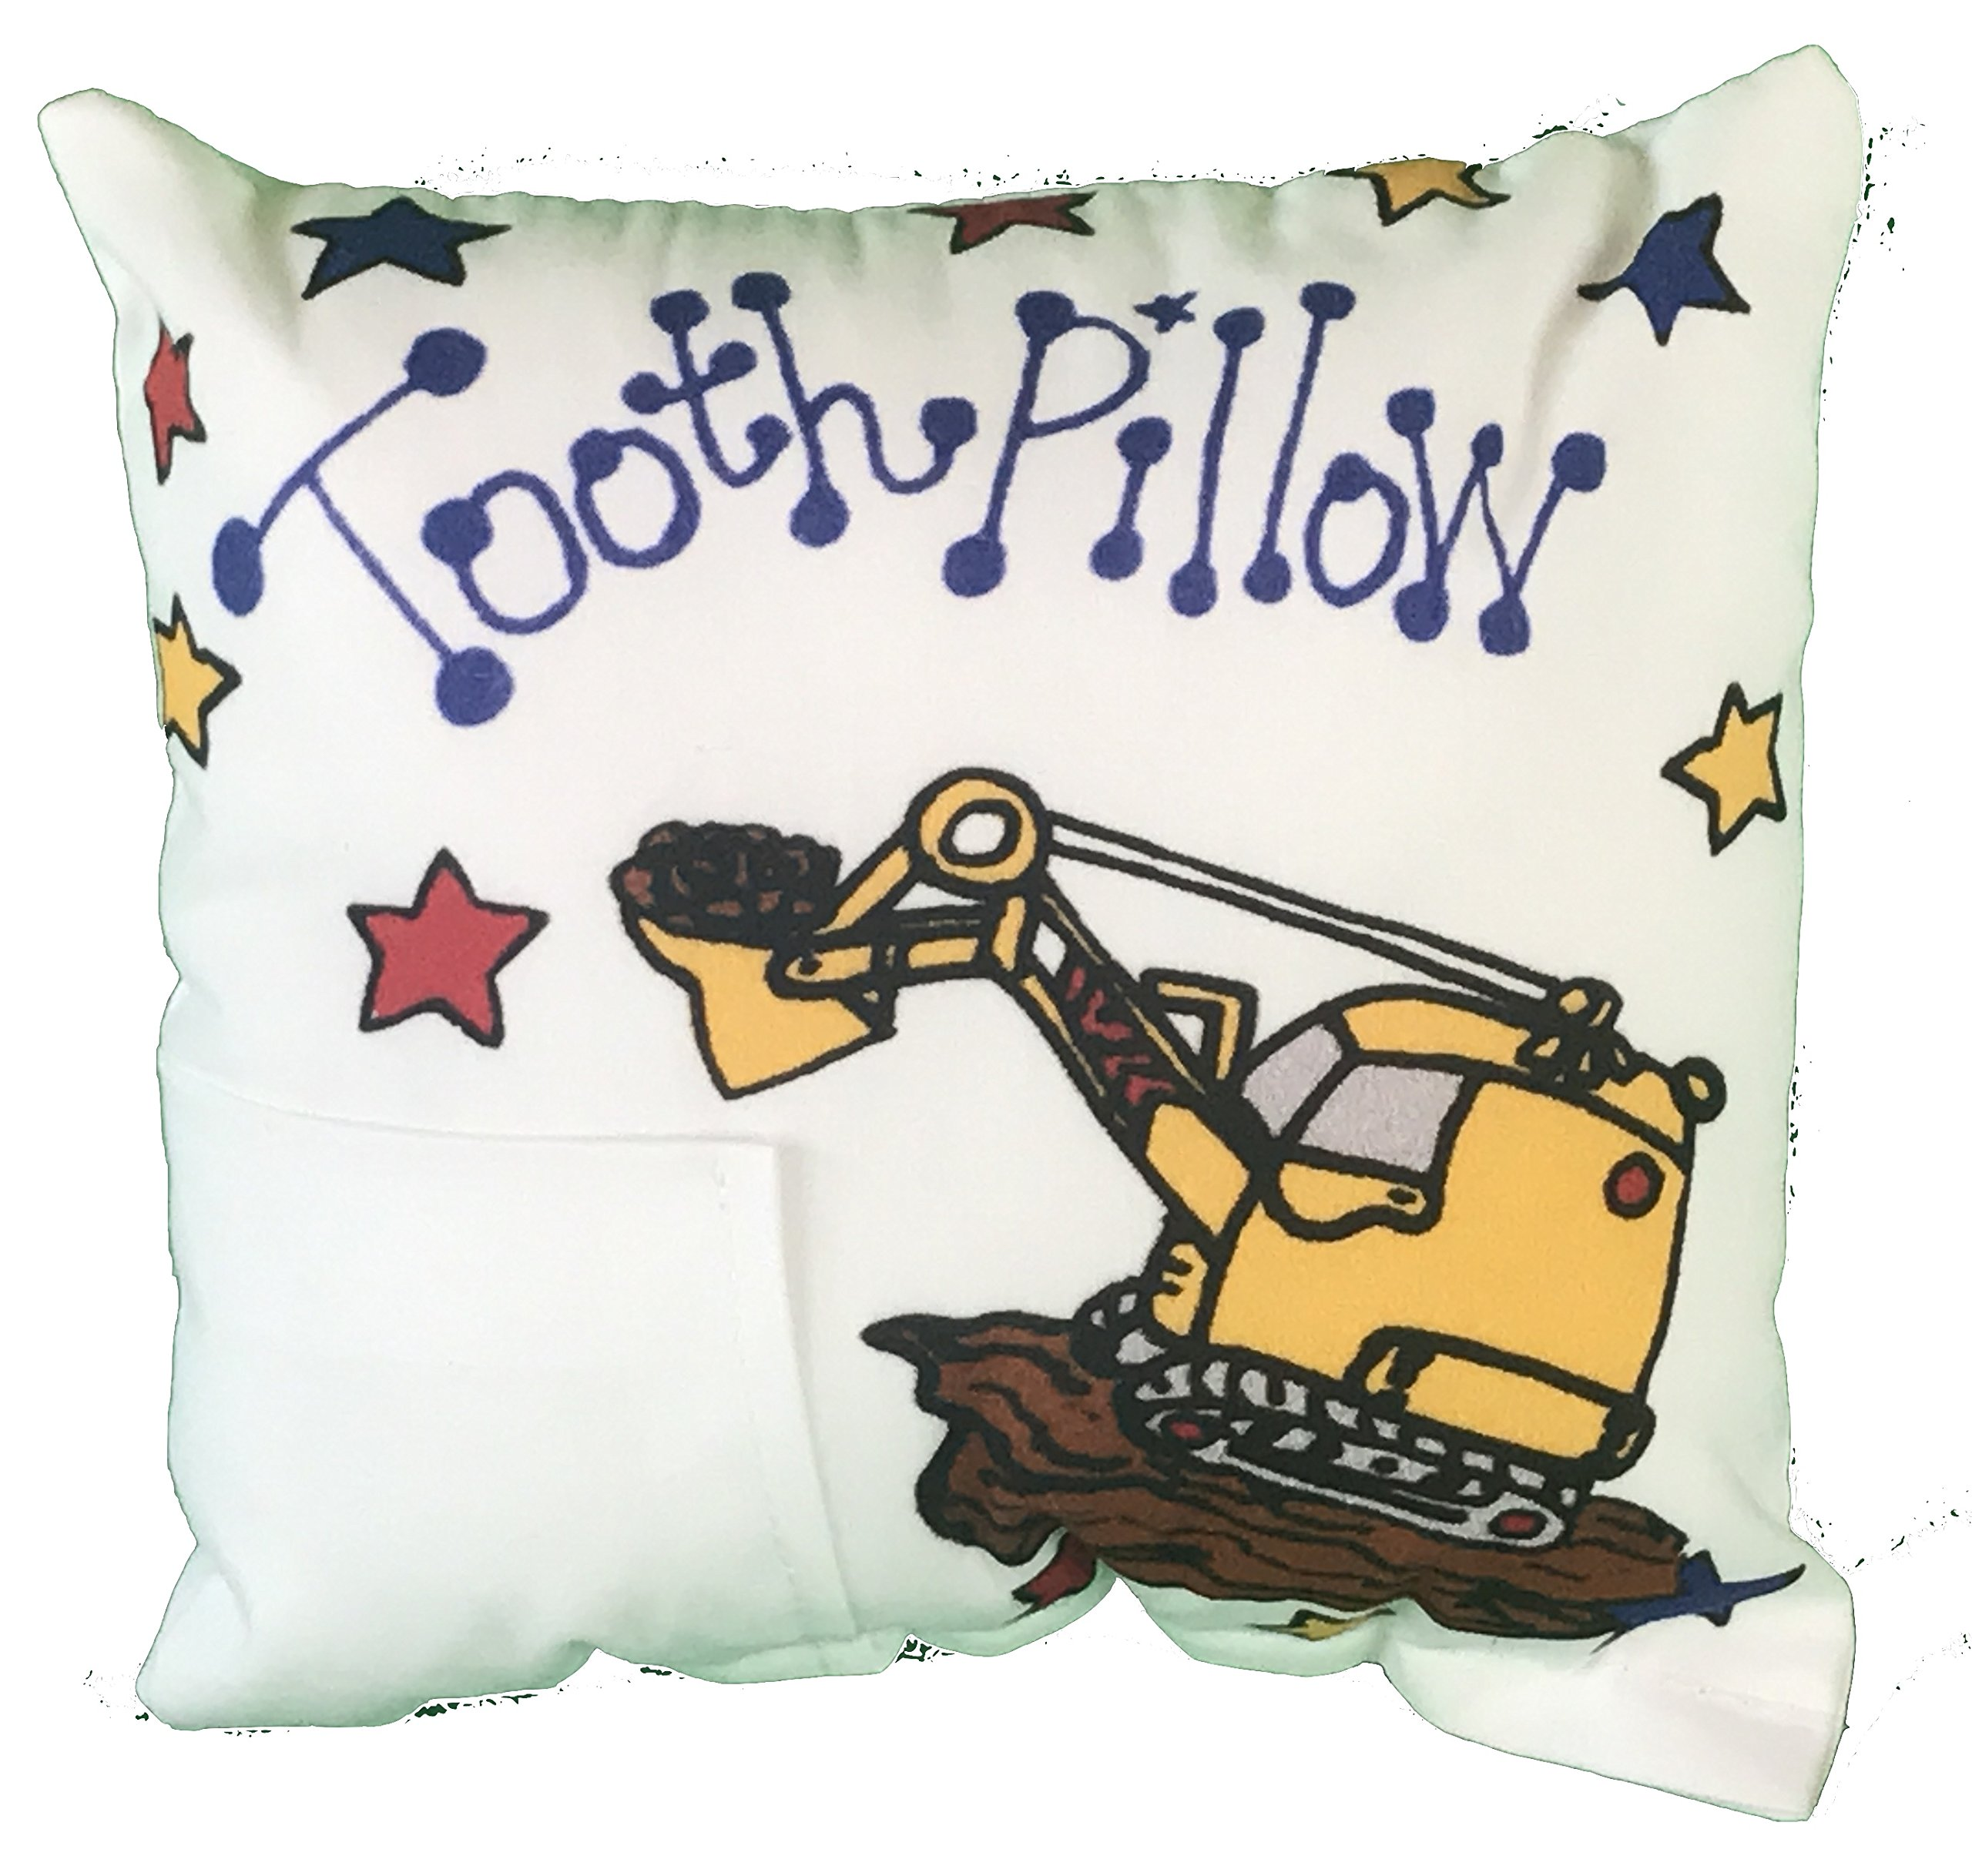 Truck Tooth Fairy Pillow with Tooth Fairy Dust by Bunnies and Bows